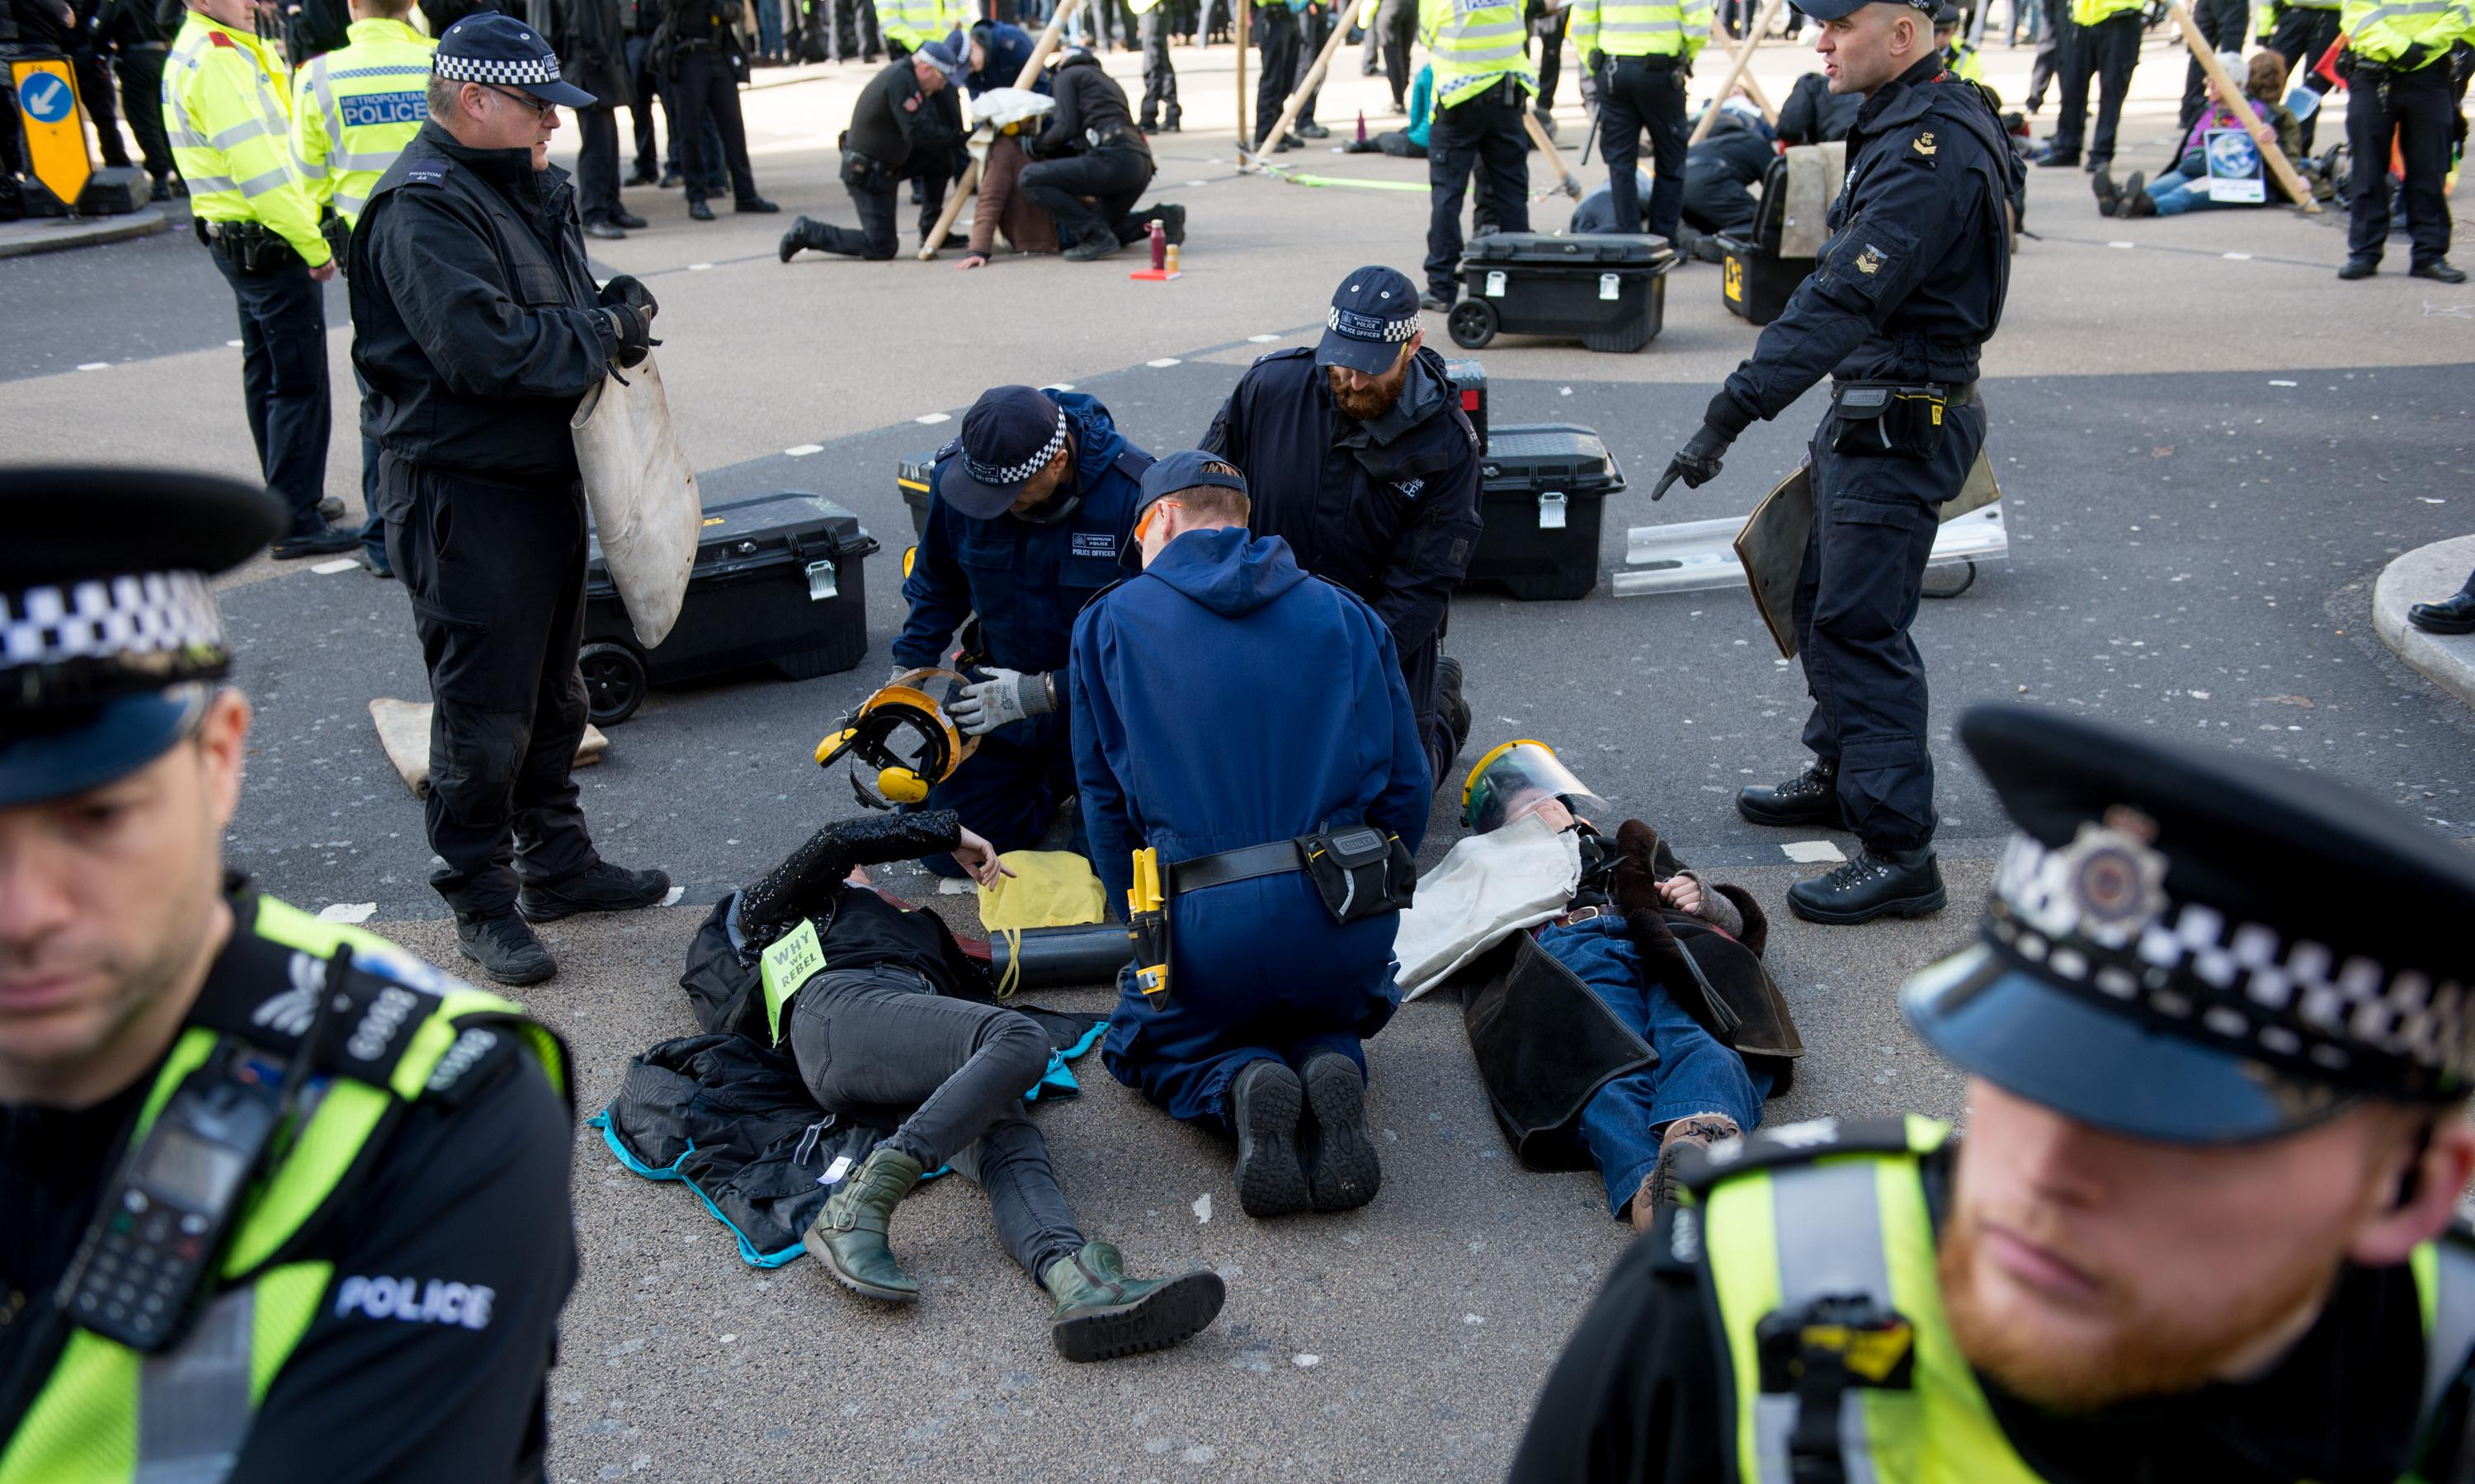 Met chief: update public nuisance law to tackle Extinction Rebellion